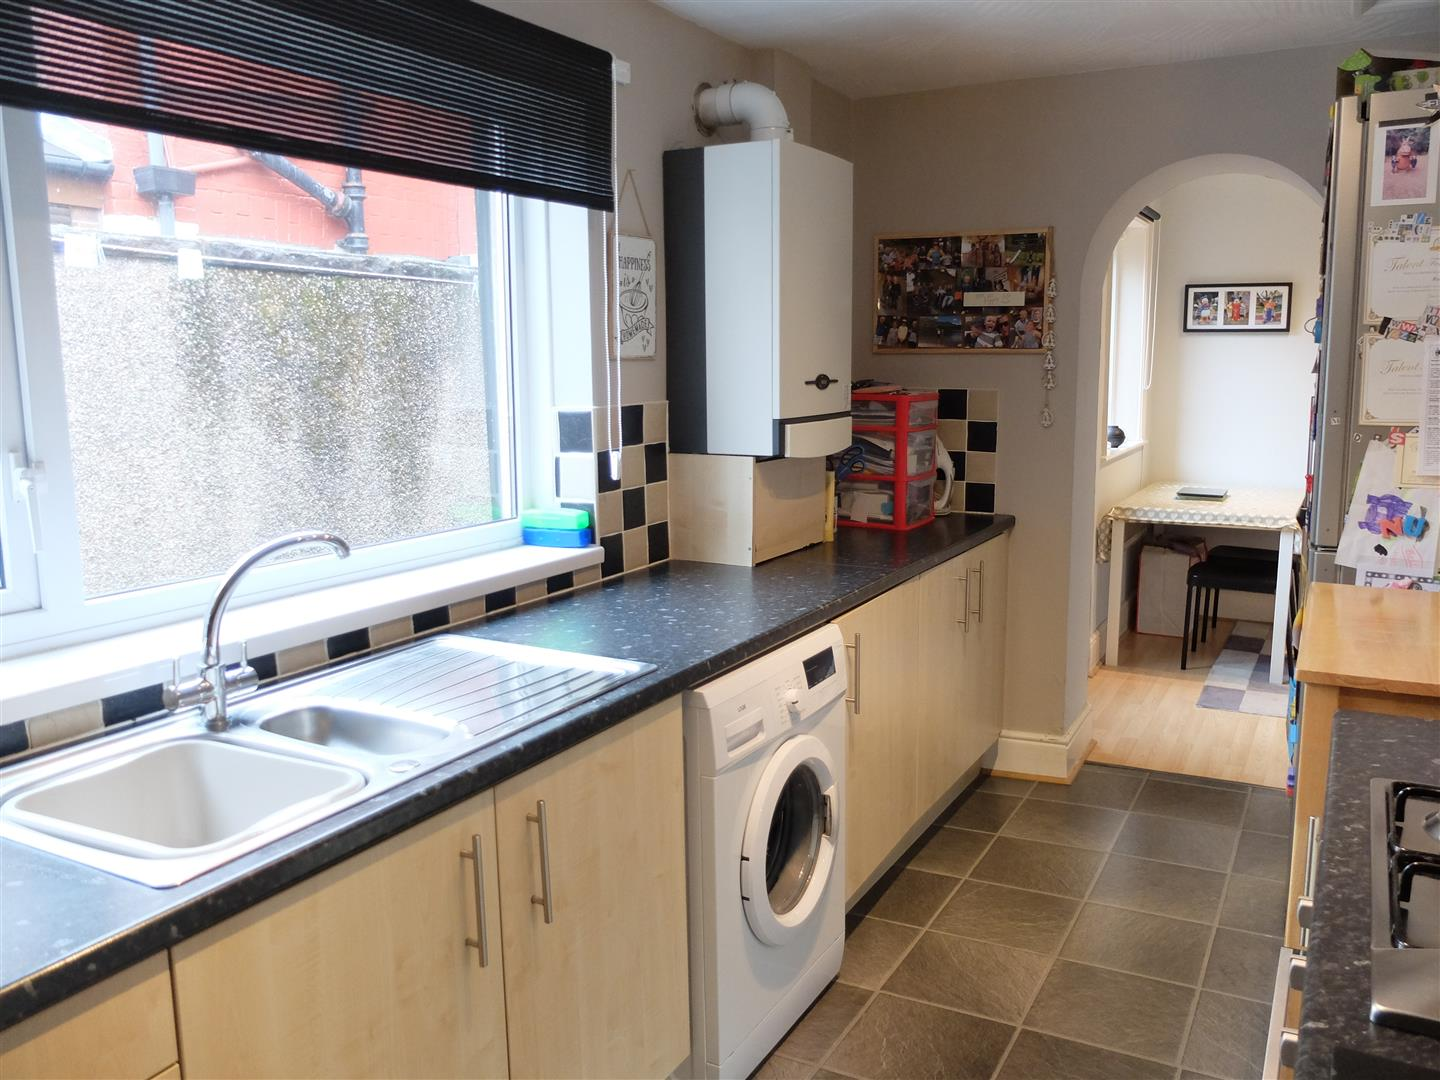 2 Bedrooms House - Mid Terrace For Sale 6 Clementina Terrace Carlisle 80,000